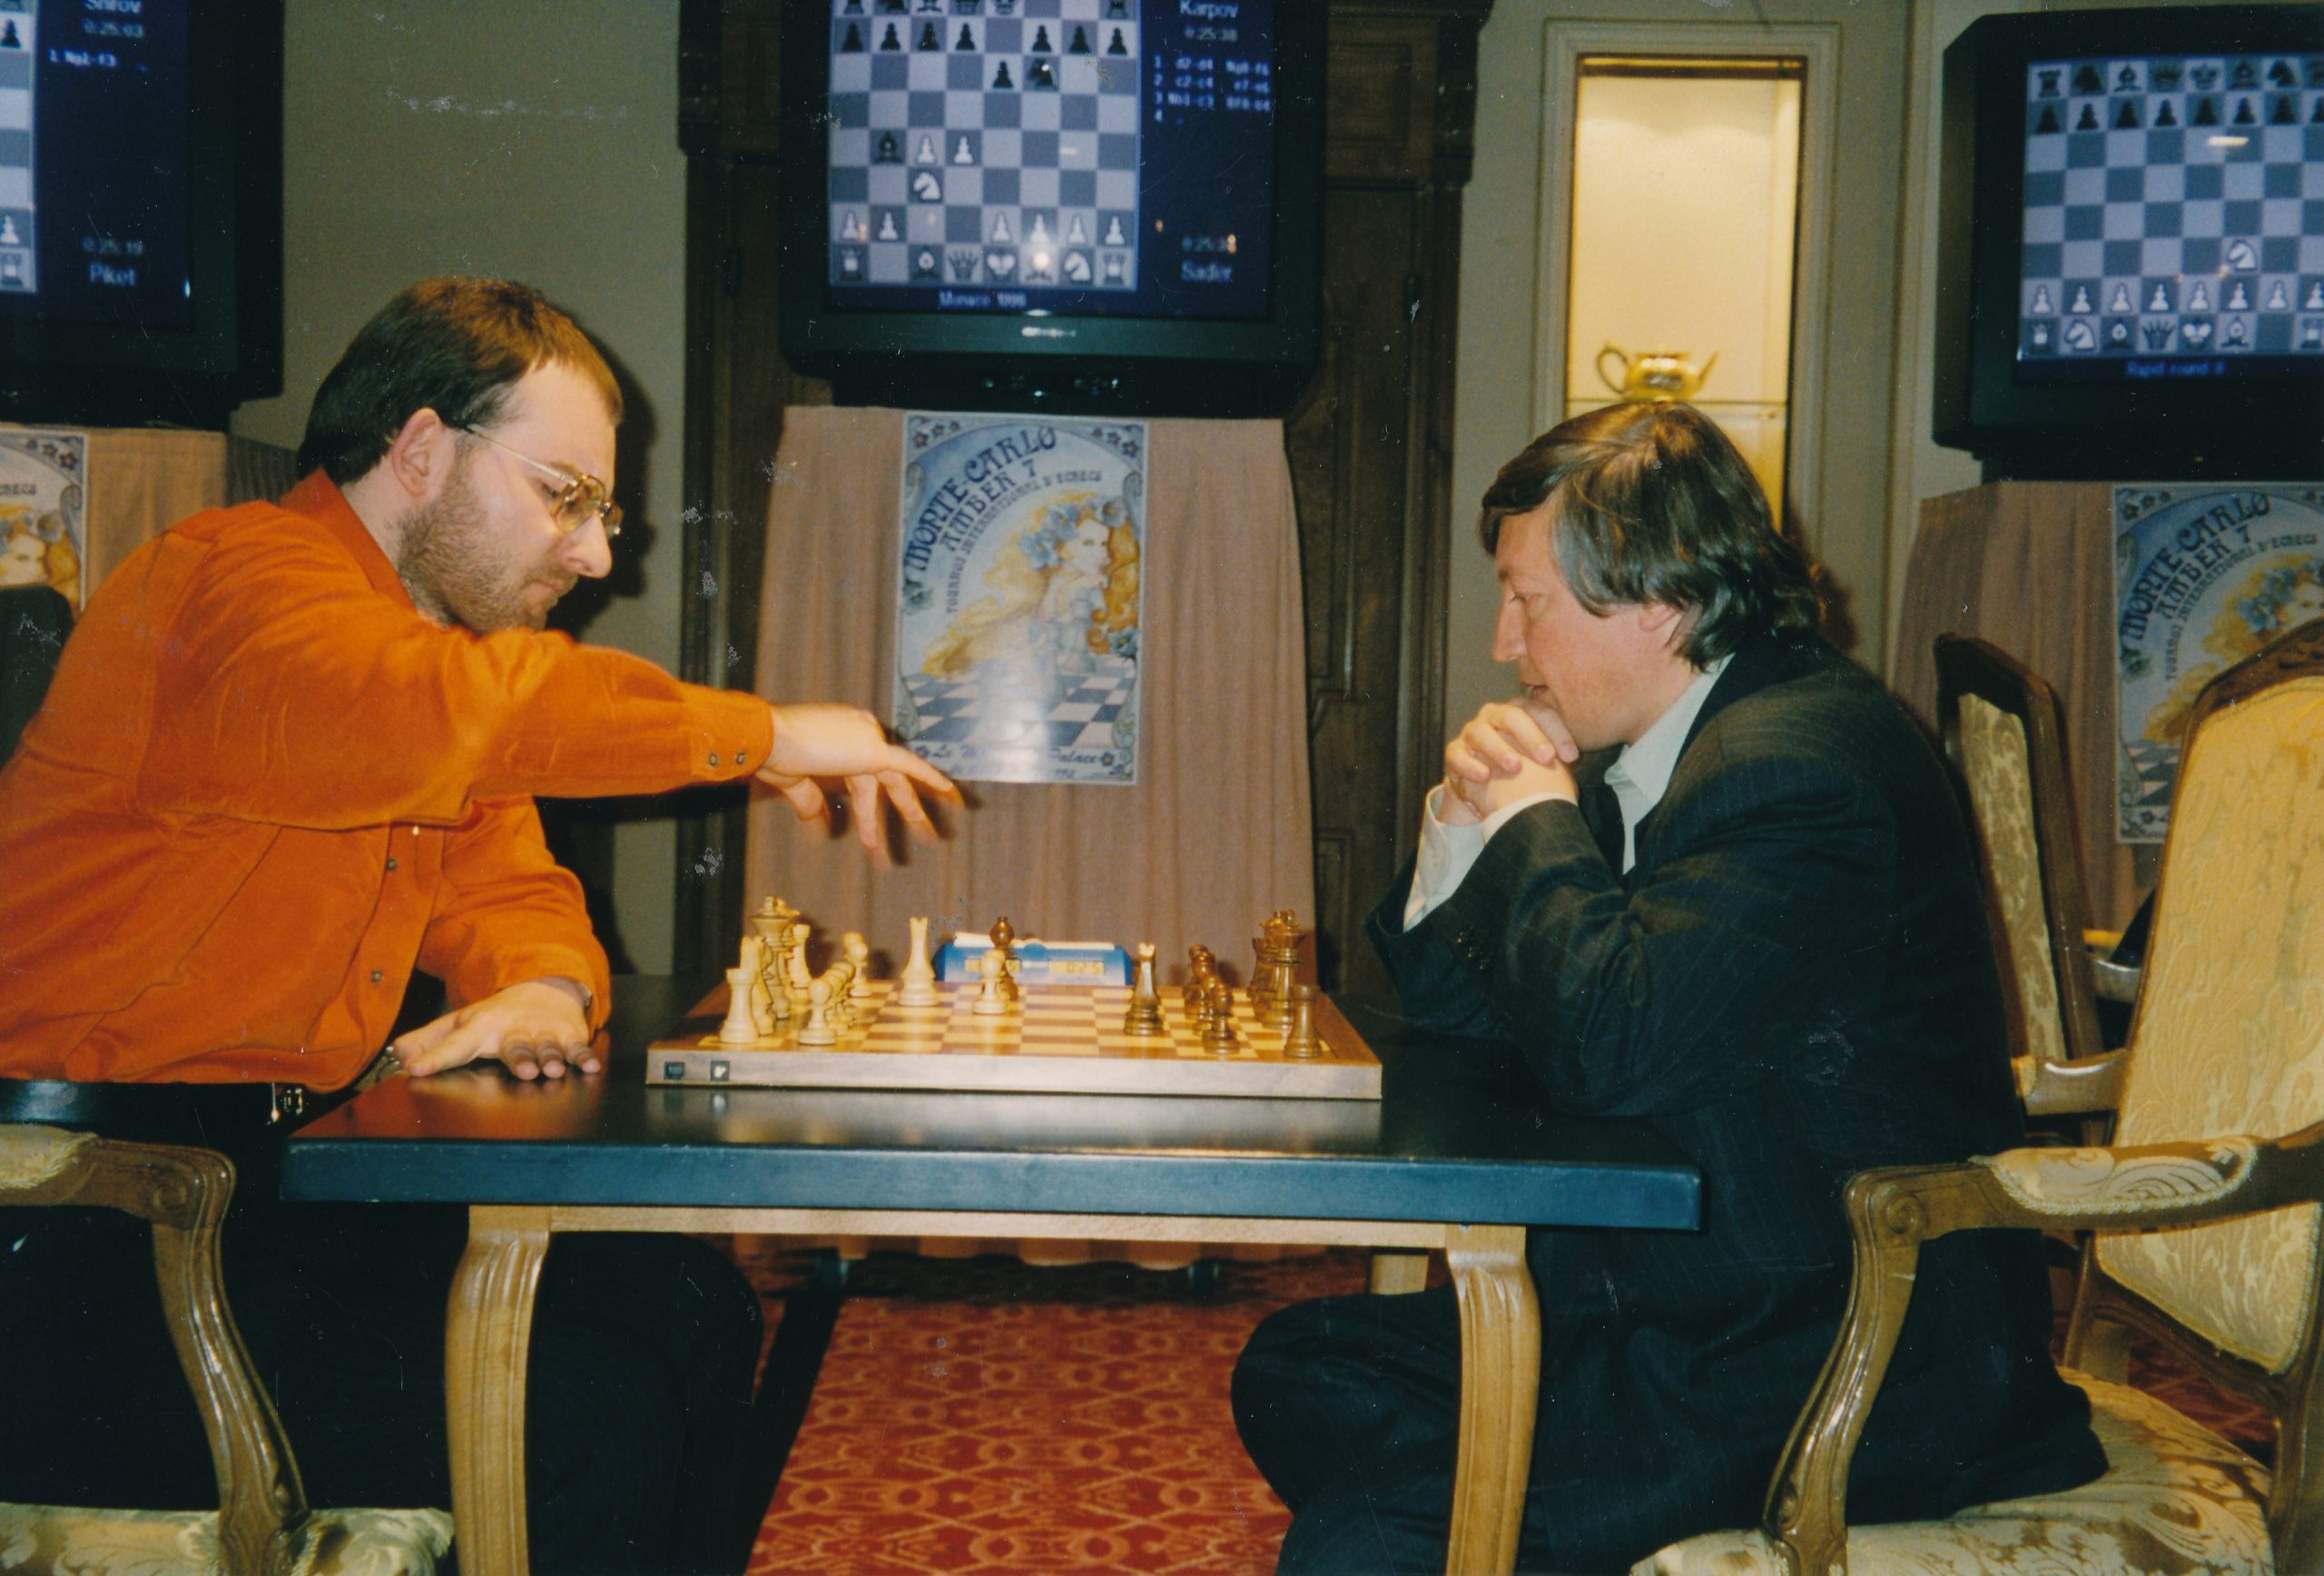 Matthew Sadler plays Anatoly Karpov at the Amber Rapid in 1998. The game was drawn.